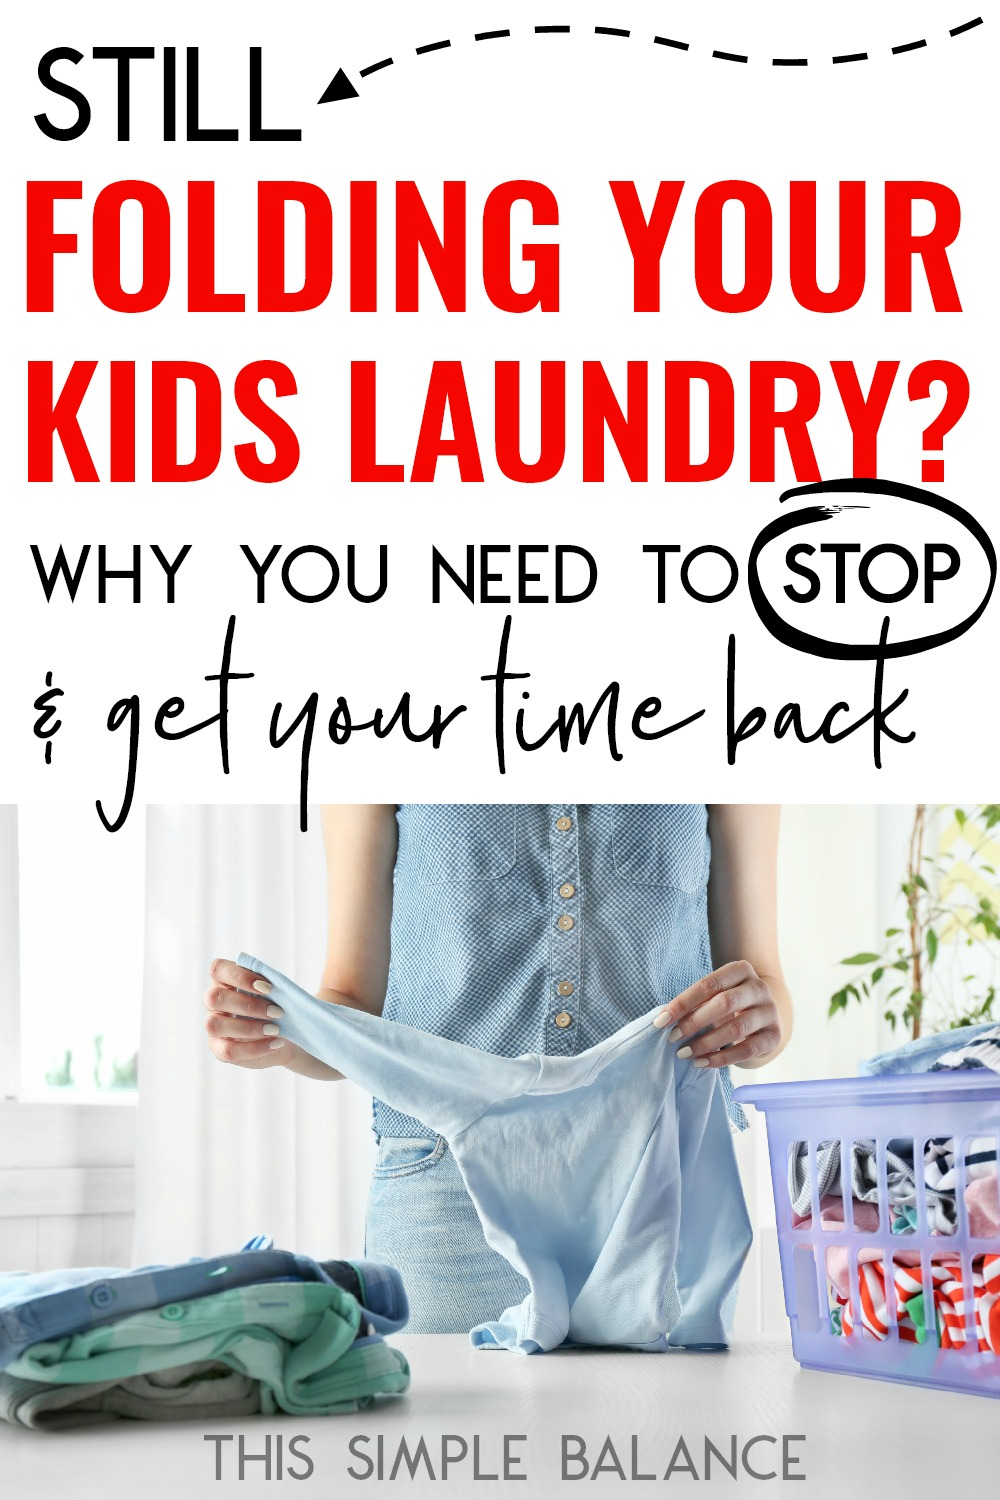 Is folding laundry taking up all your free time? Here's 6 good reasons to stop folding your kids' laundry and exactly how to do it (from a neat freak, organized, clean home loving mom).